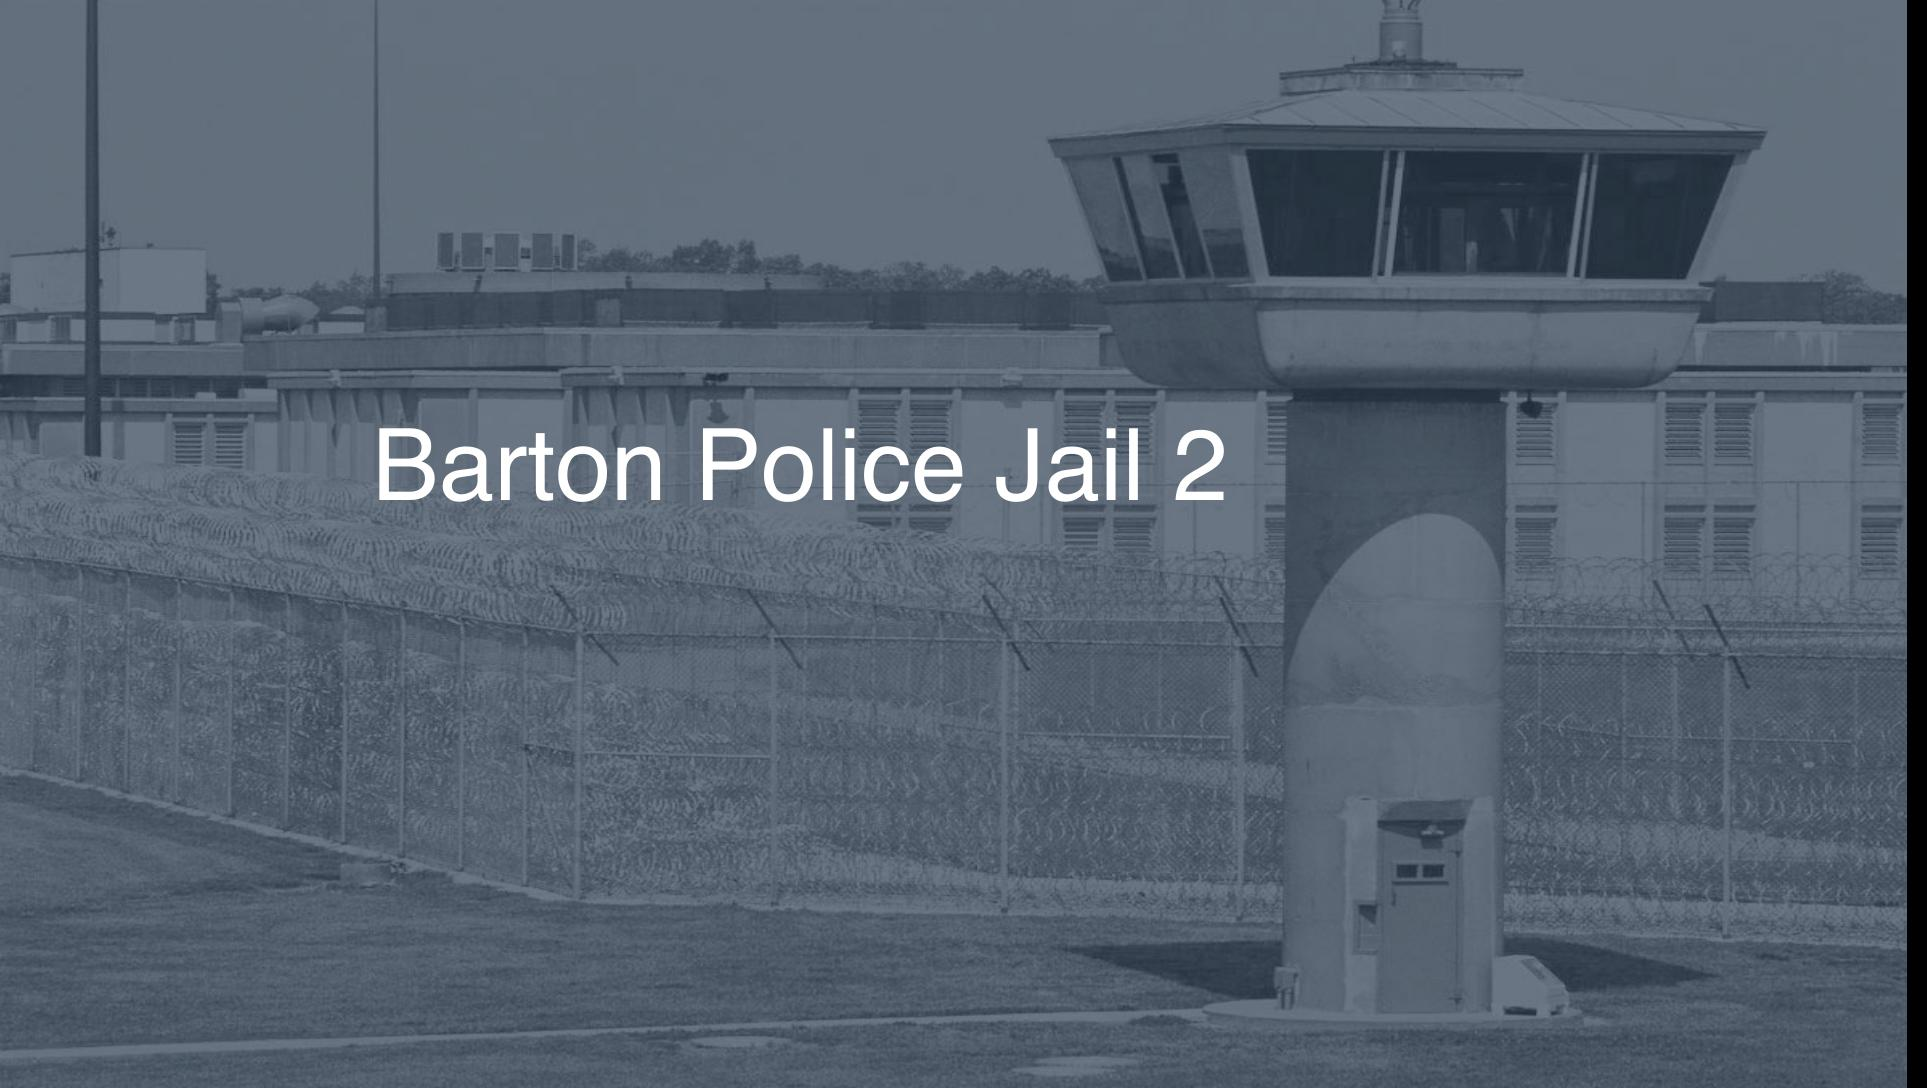 Barton Police Jail correctional facility picture